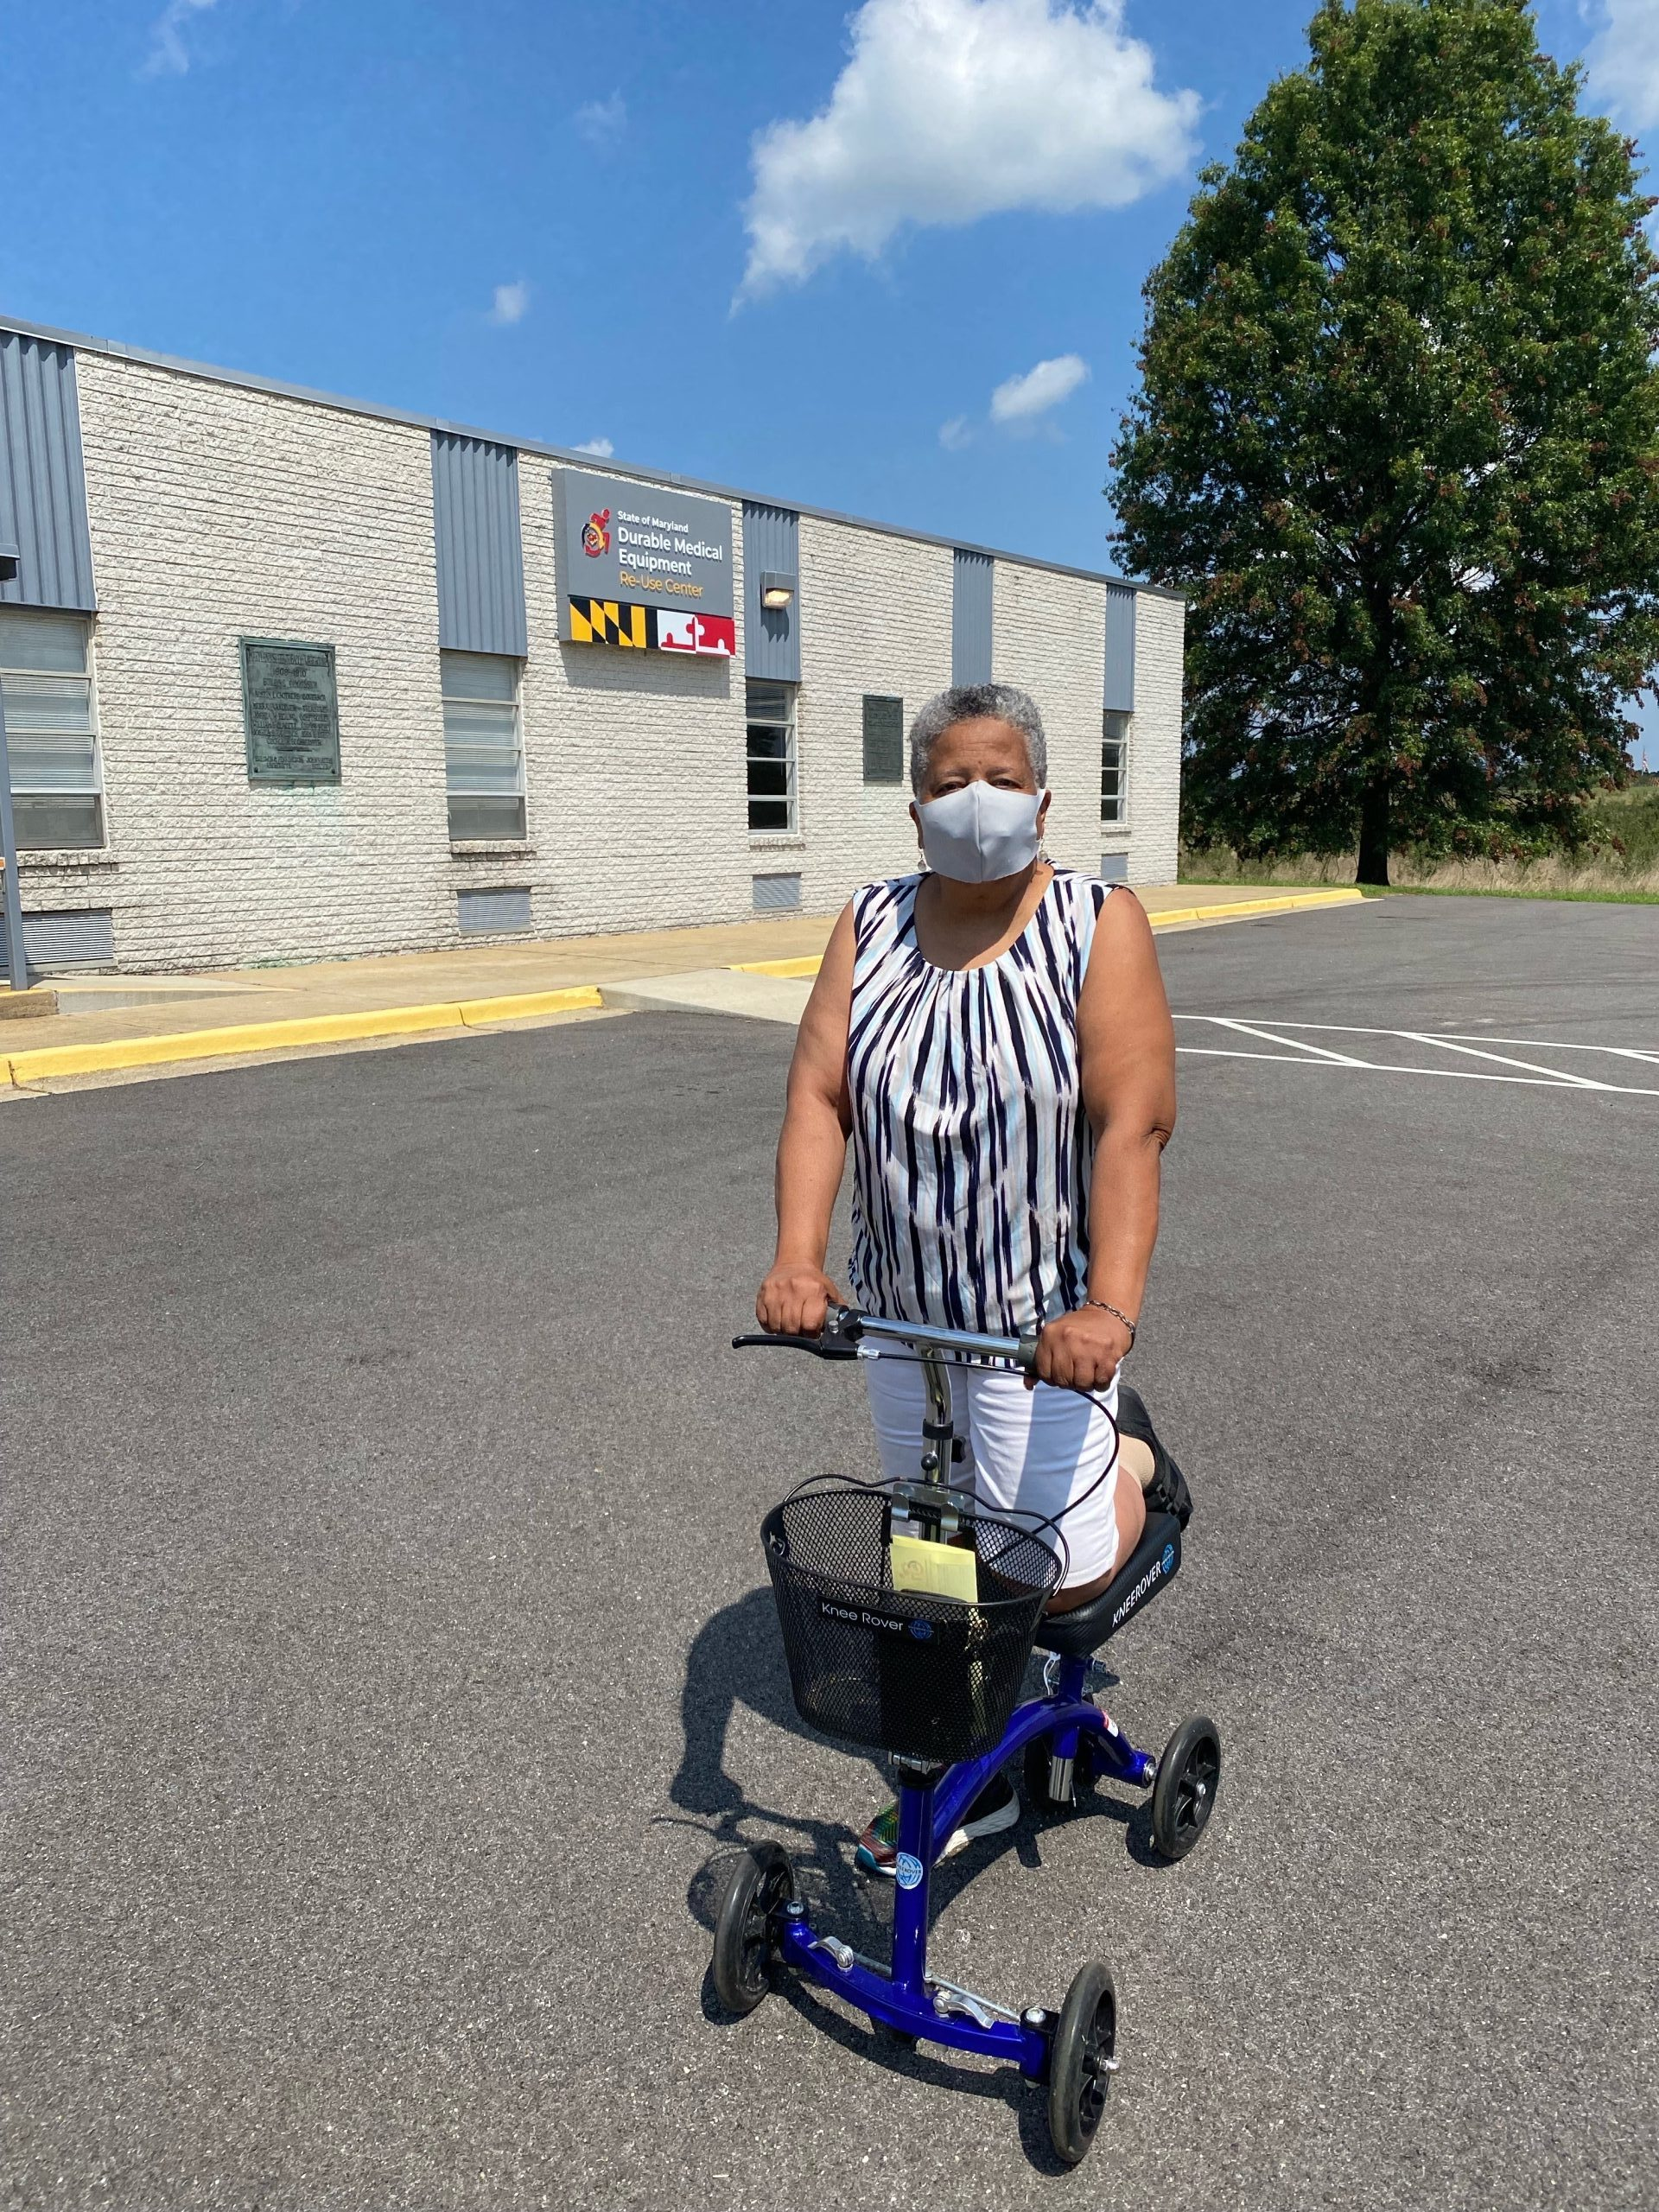 Janice Joyner in front of the Durable Medical Equipment Re-Use Headquarters in Cheltenham, Maryland, on August 27, 2021. Photo courtesy of Program Director Ian Edwards